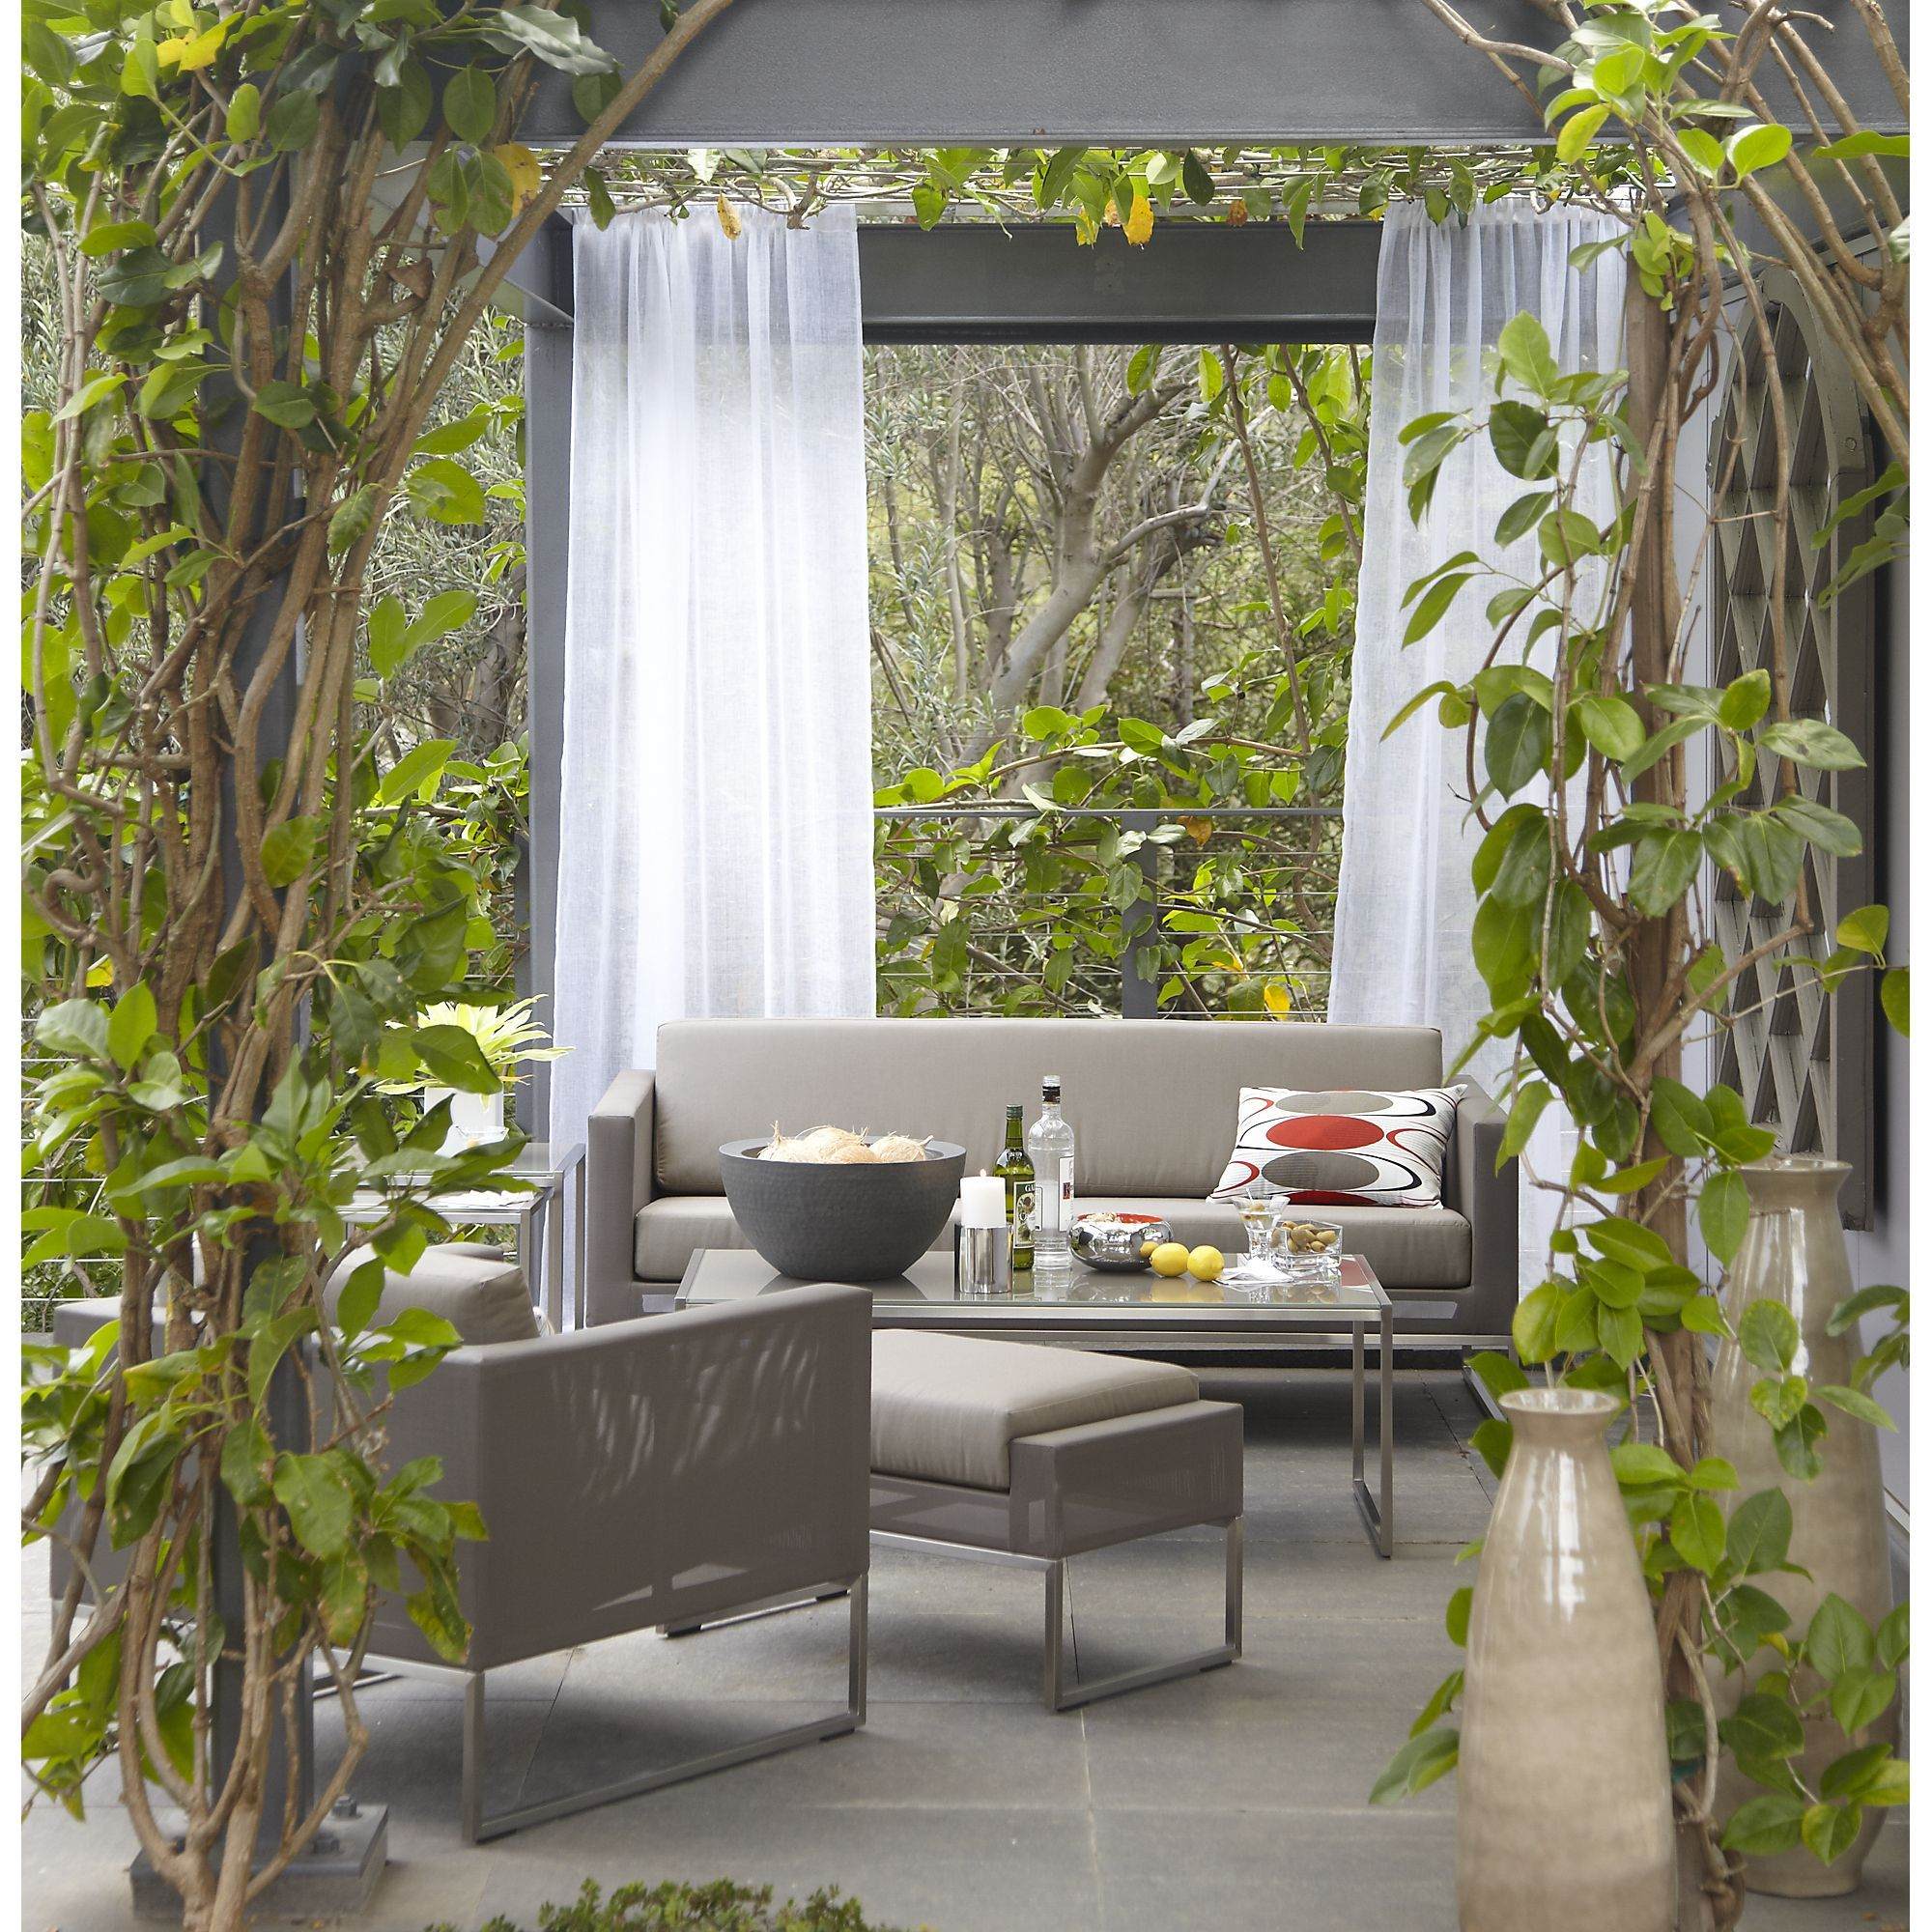 Dune Taupe Sofa with Sunbrella Cushions + Reviews   Crate ... on Dune Outdoor Living  id=89043